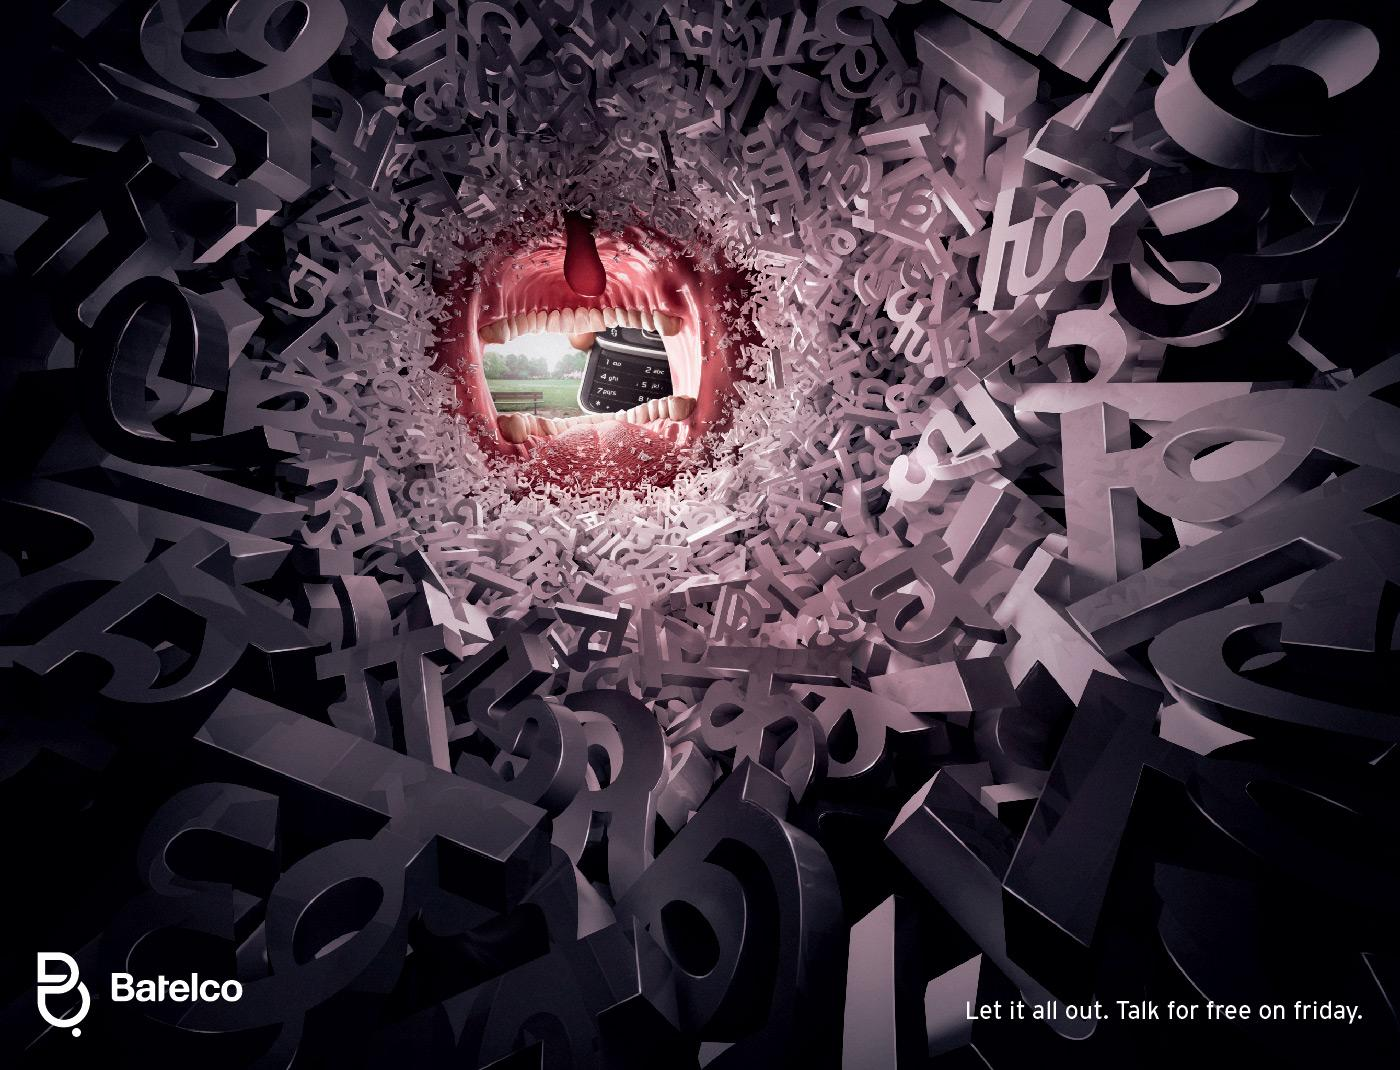 Creative Typography Ads - Batelco: Let it all out (Hindi)